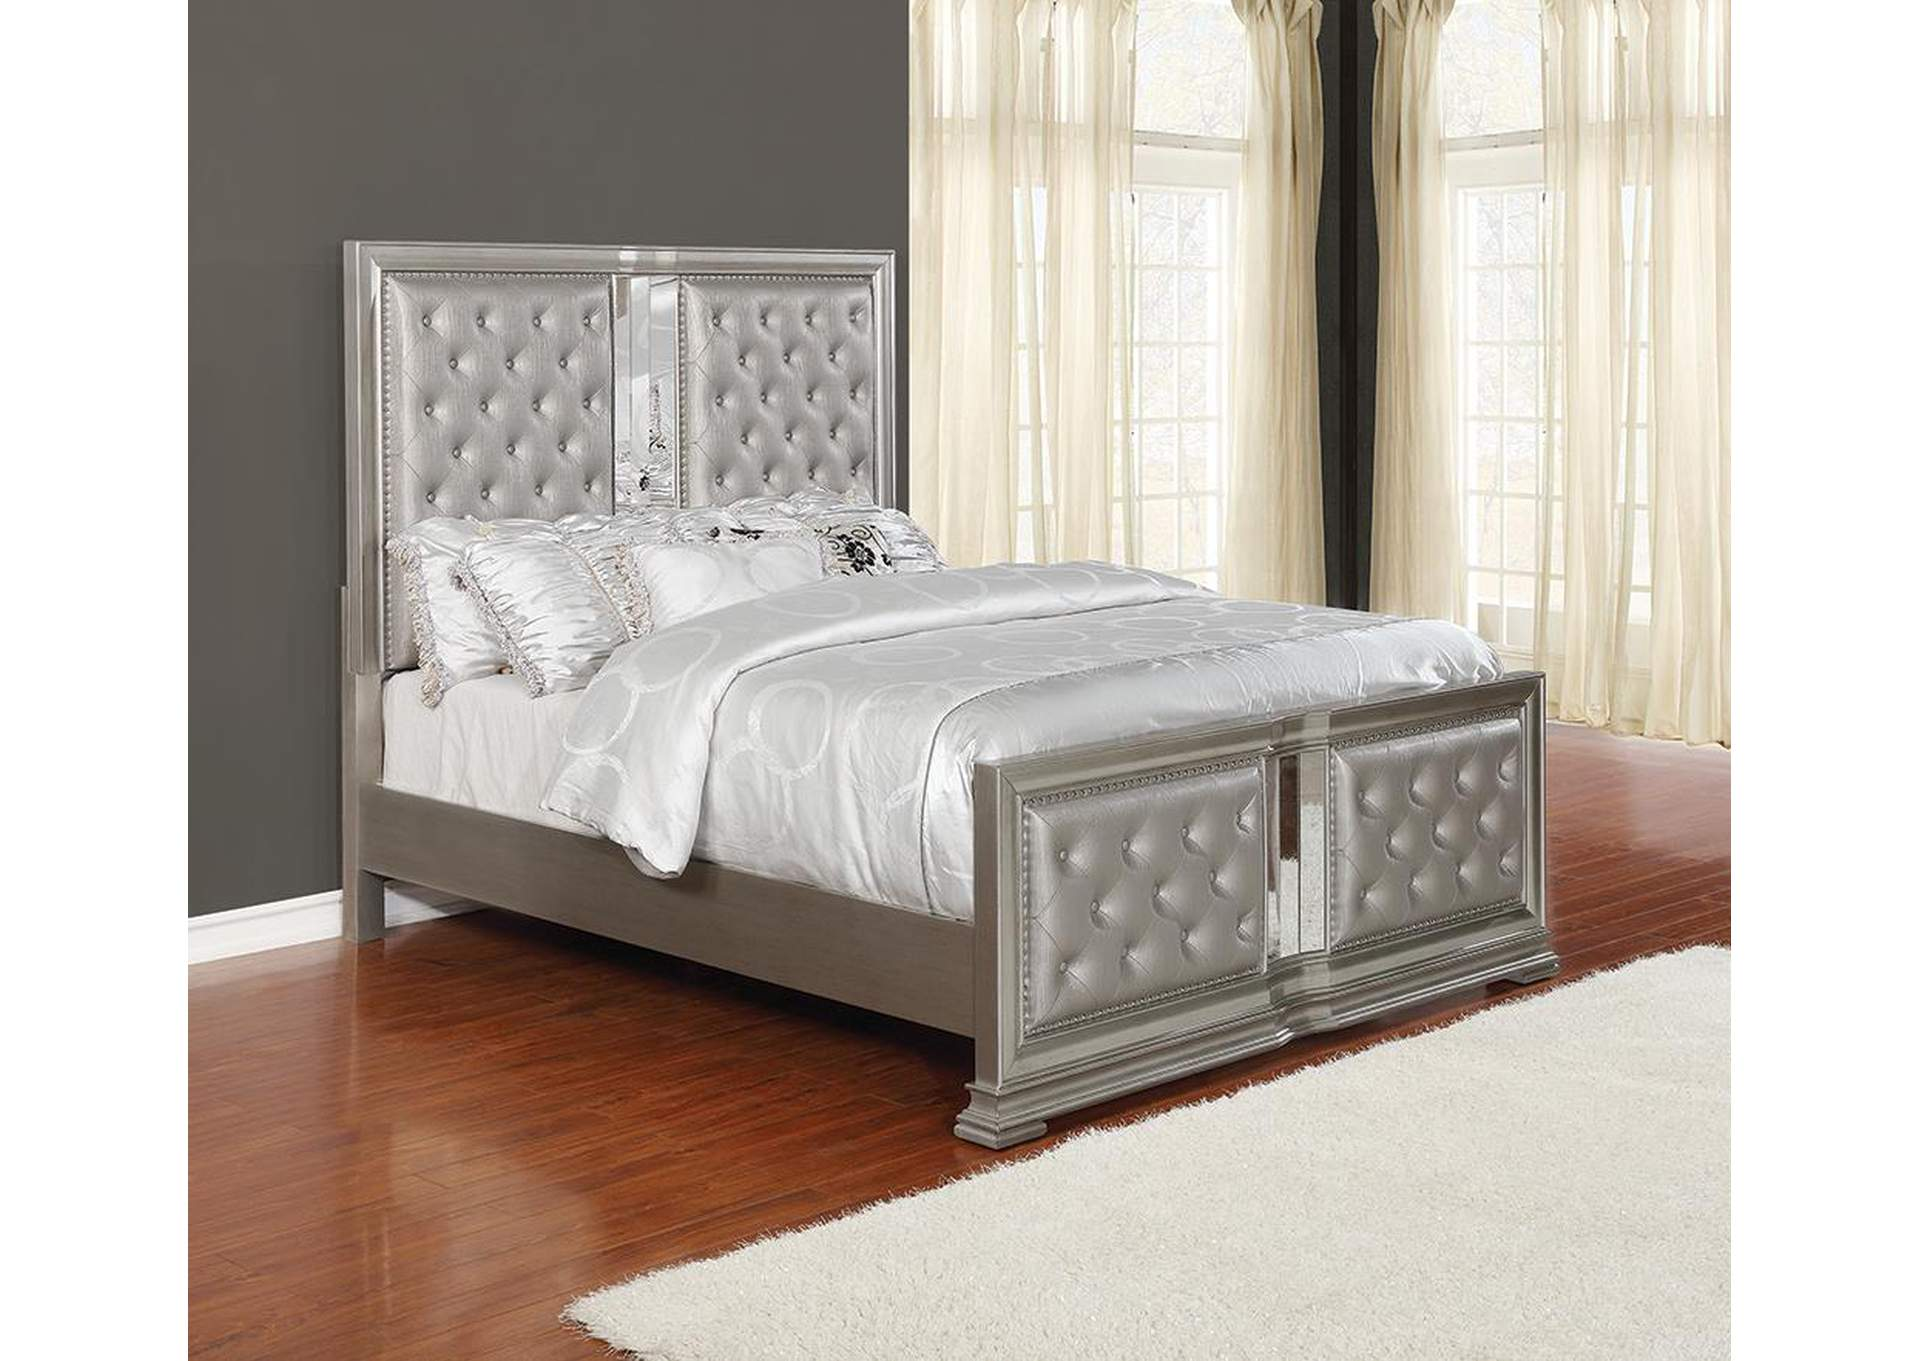 Adele Metallic Upholstered Eastern King Panel Bed,Coaster Furniture